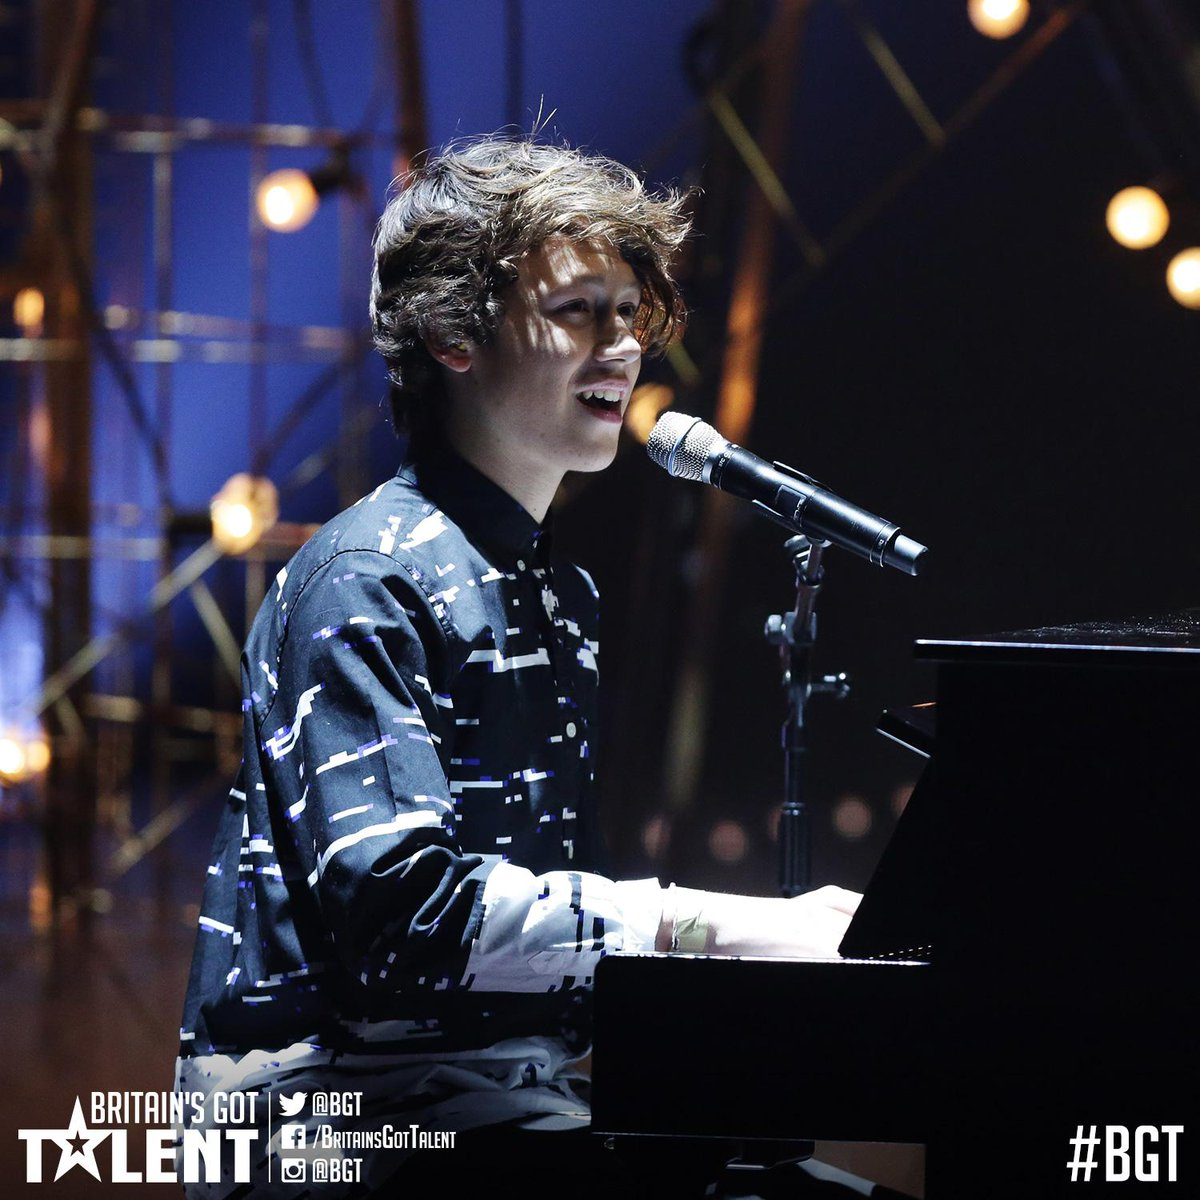 PERFECTION!! RT if you're #TeamIsaacWaddington!! #BGTfinal http://t.co/kyt2Skbz1t